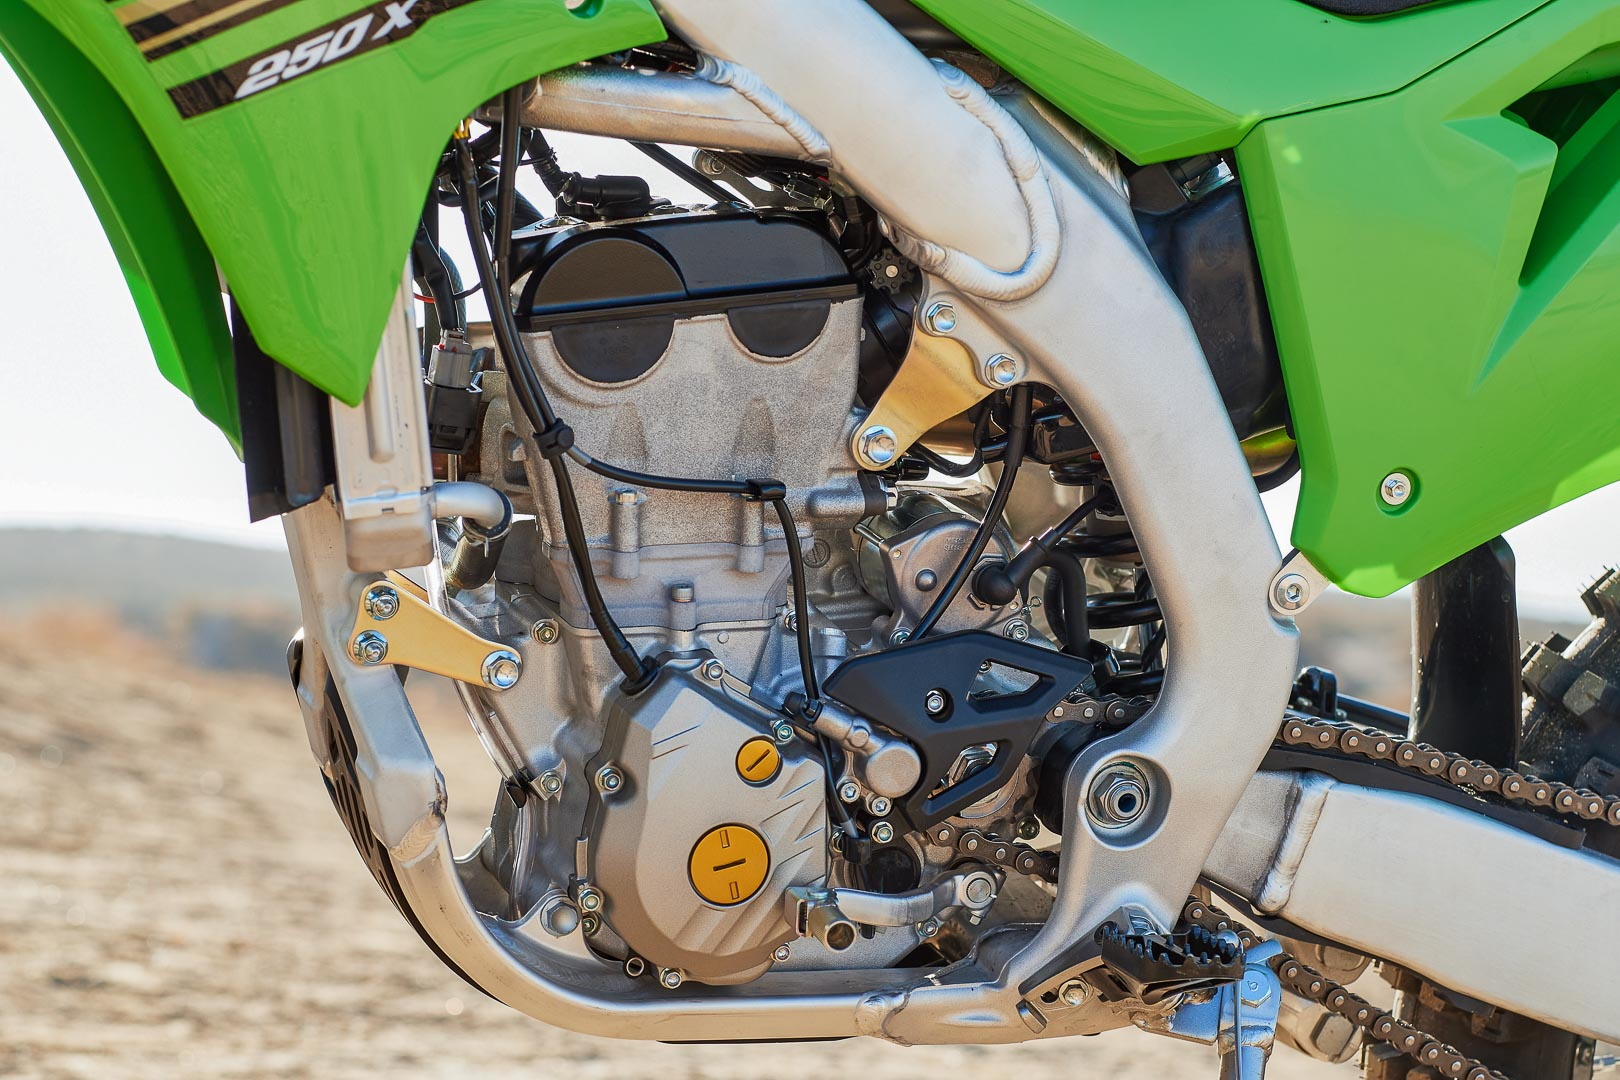 2021 Kawasaki KX250X Review: Specs